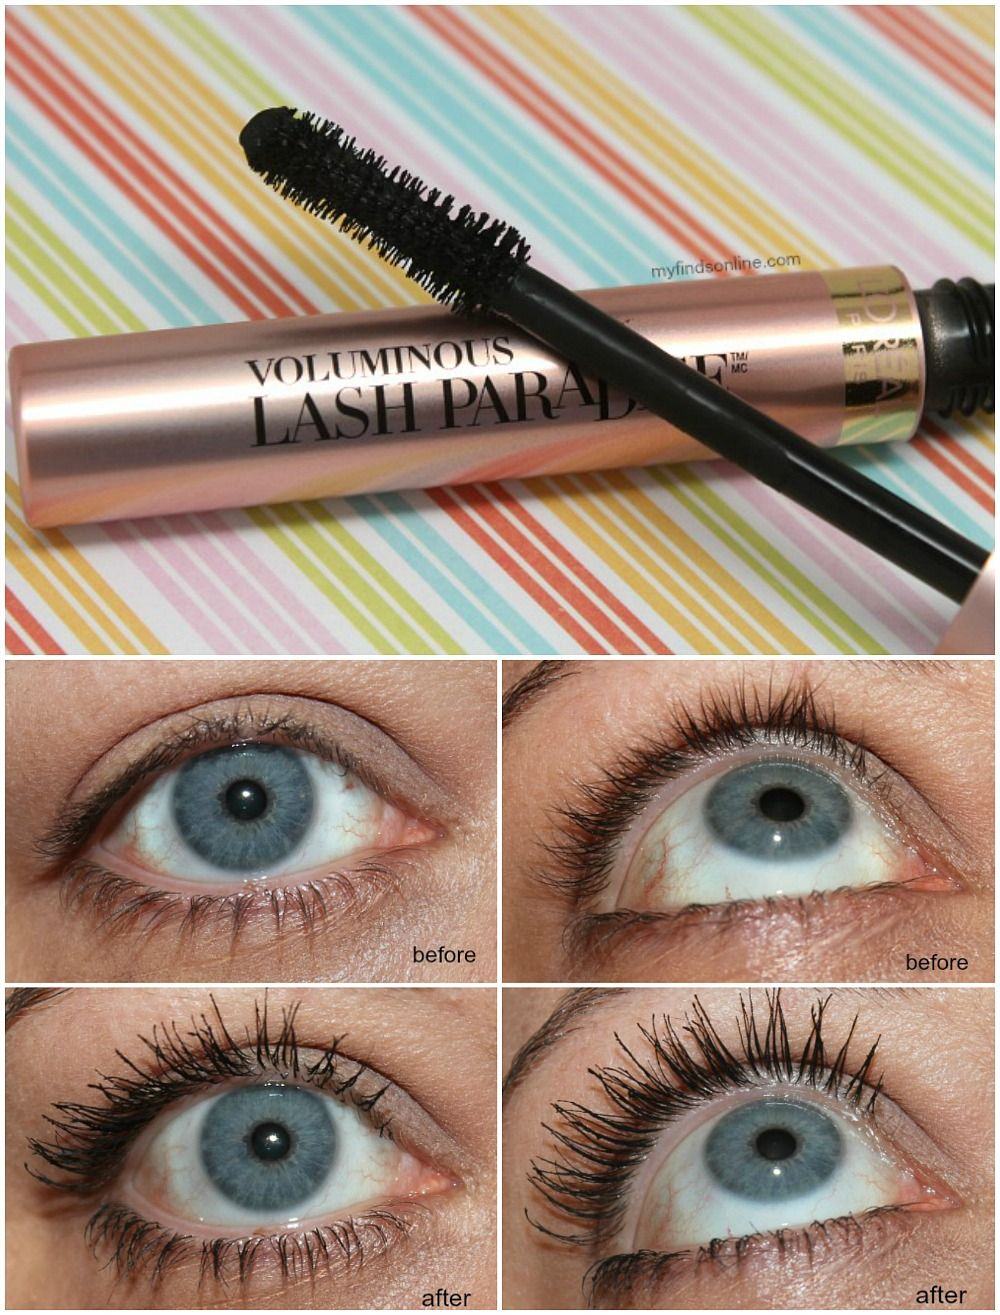 566c368ca93 L'Oreal Voluminous Lash Paradise Mascara Review and Swatches /  myfindsonline.com